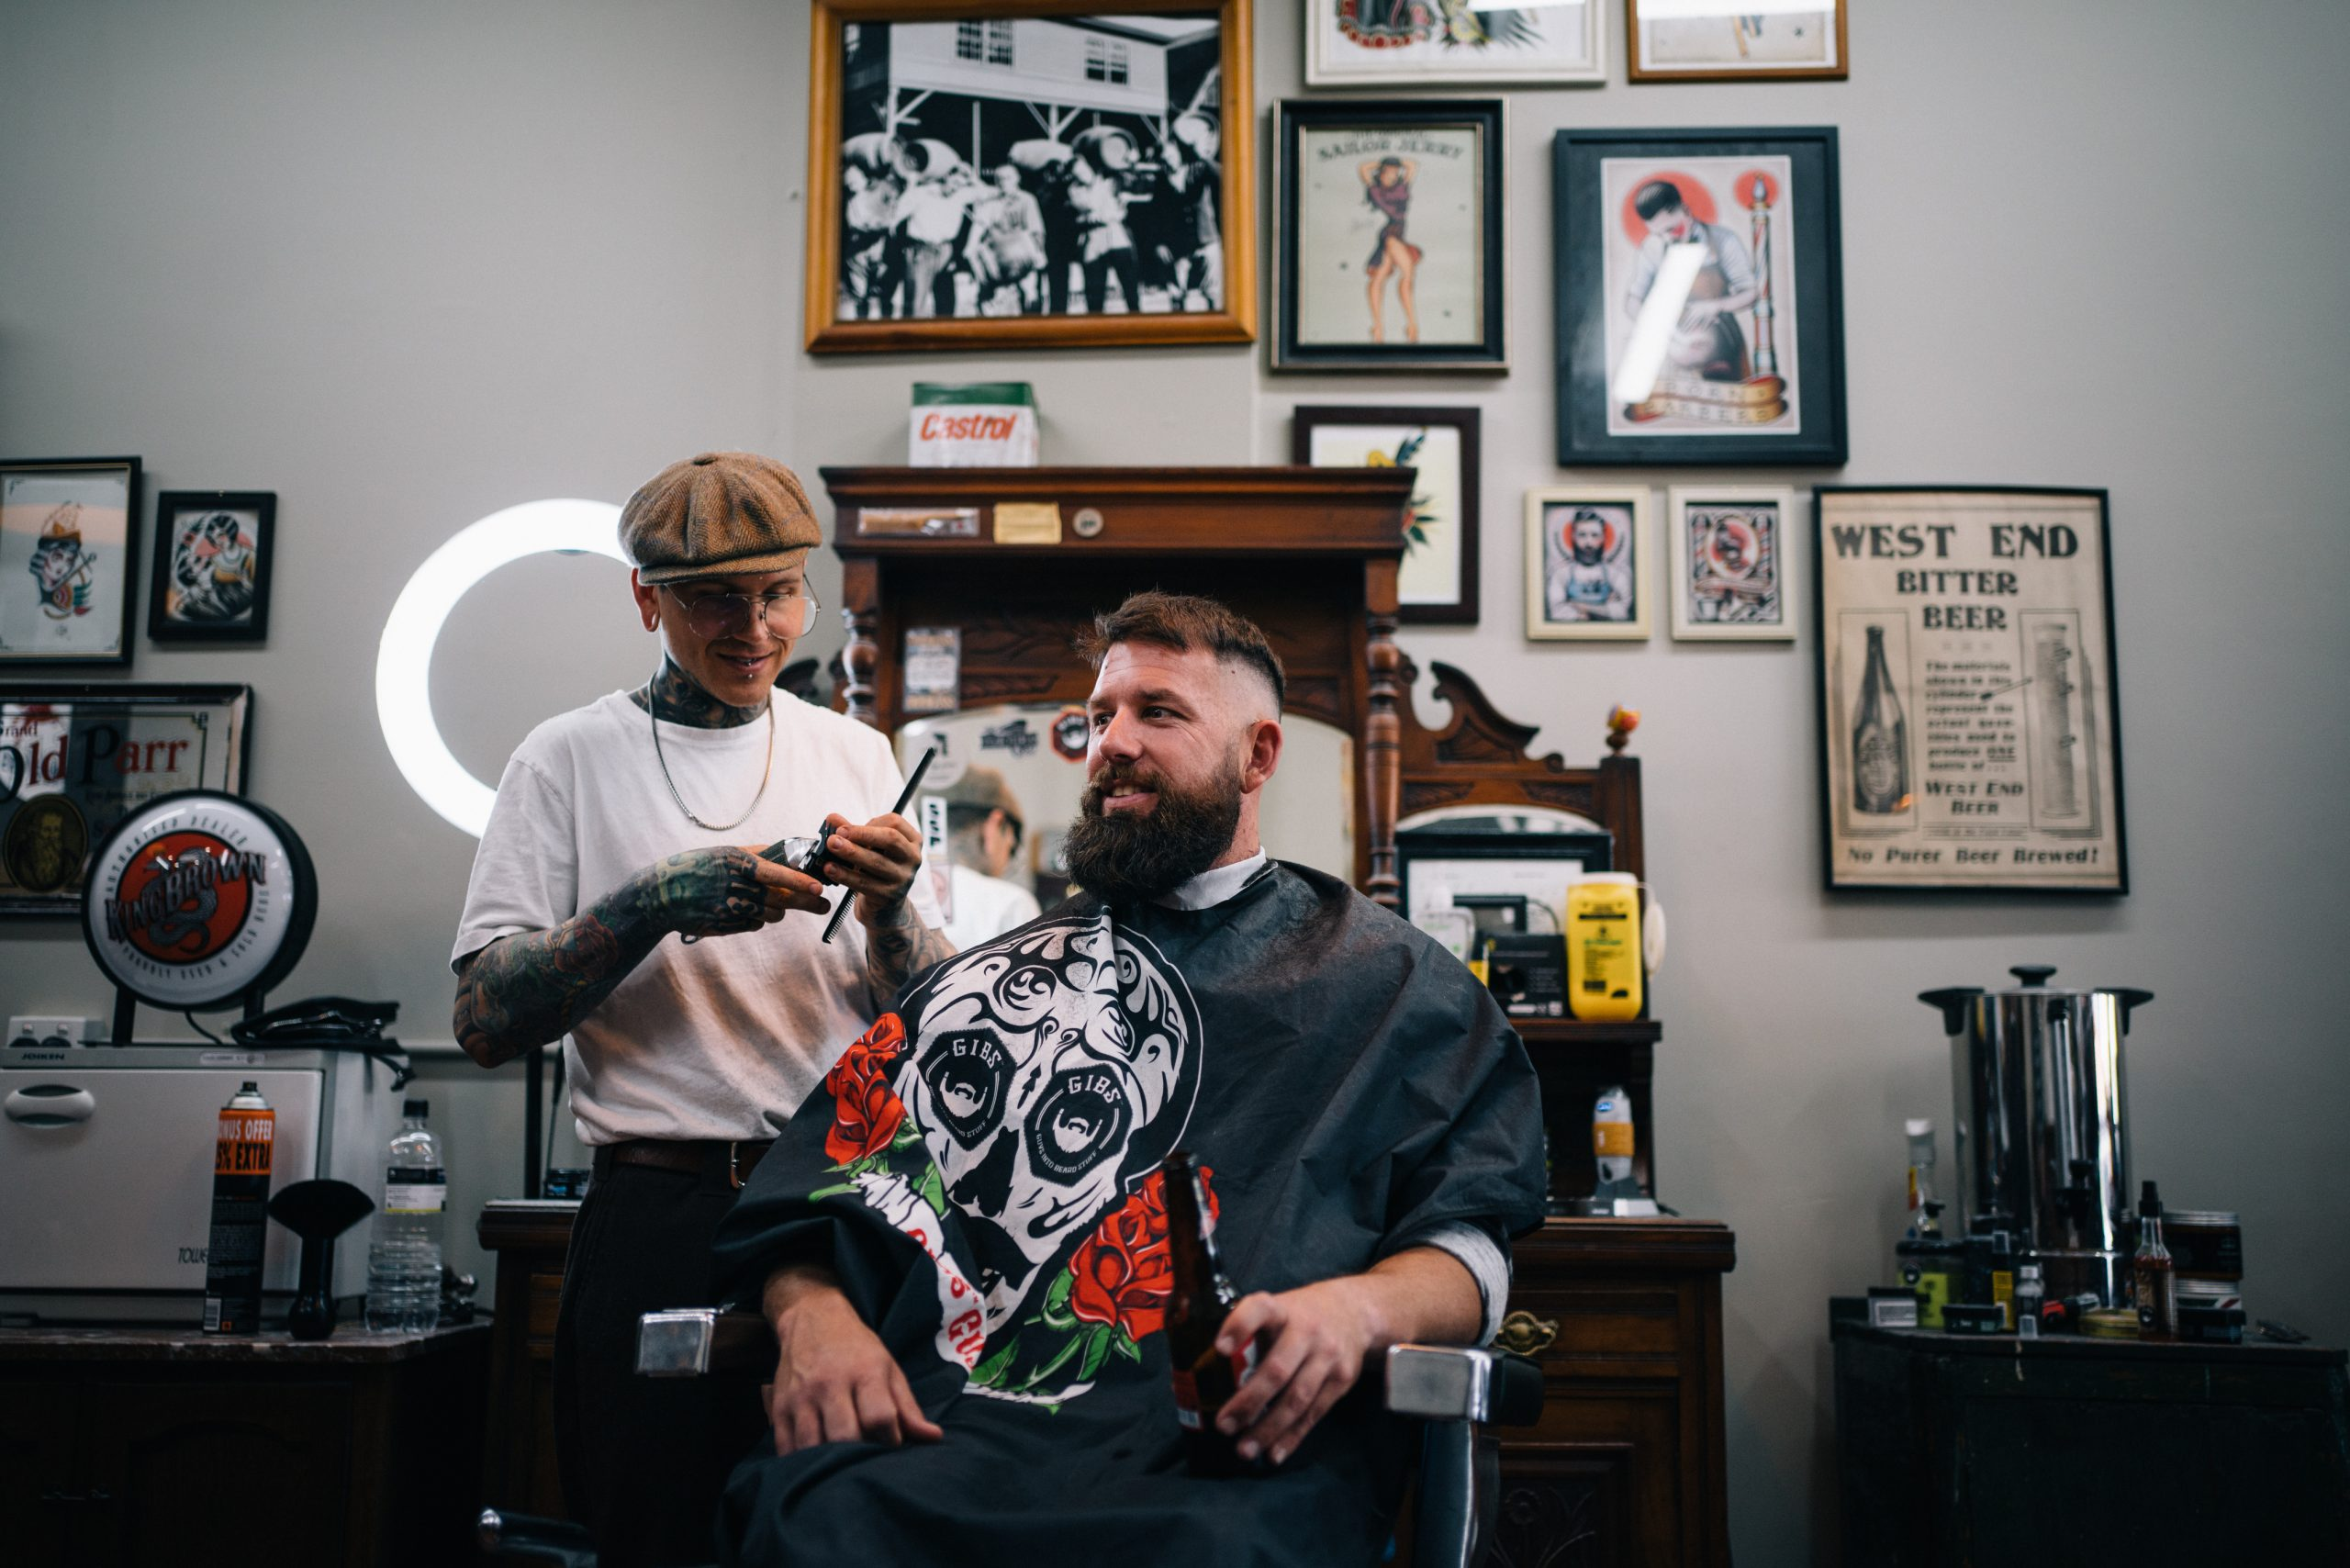 Groom at barber shop